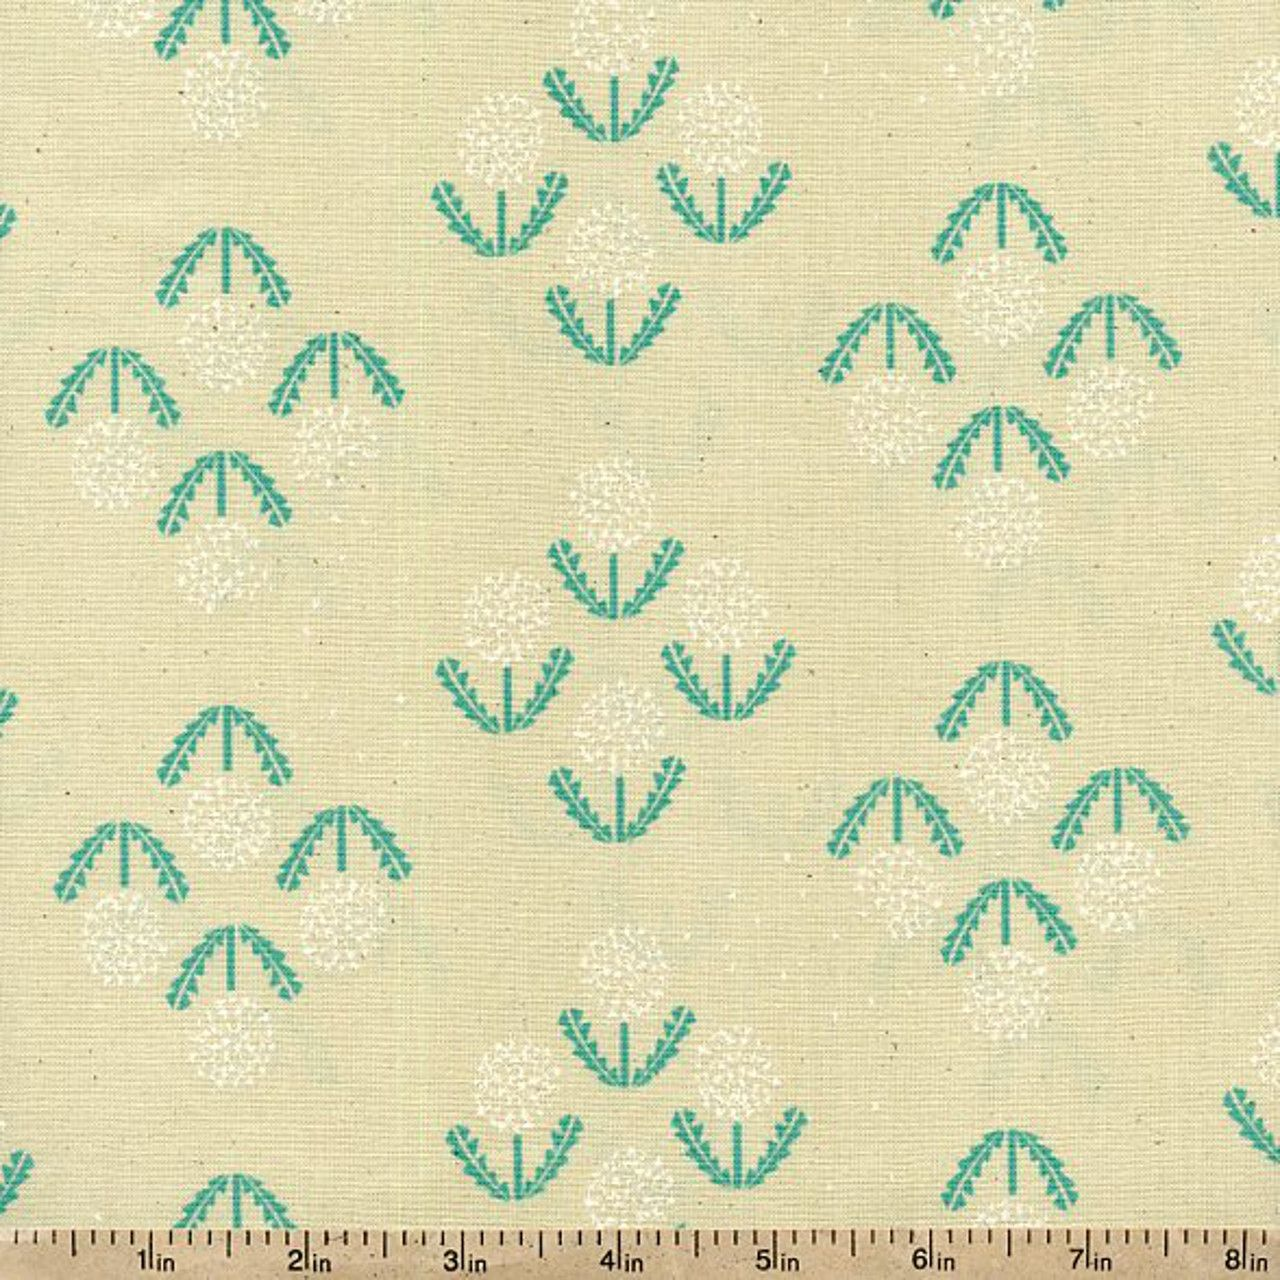 Zephyr Puff Cotton Fabric - Teal by Beverlys.com